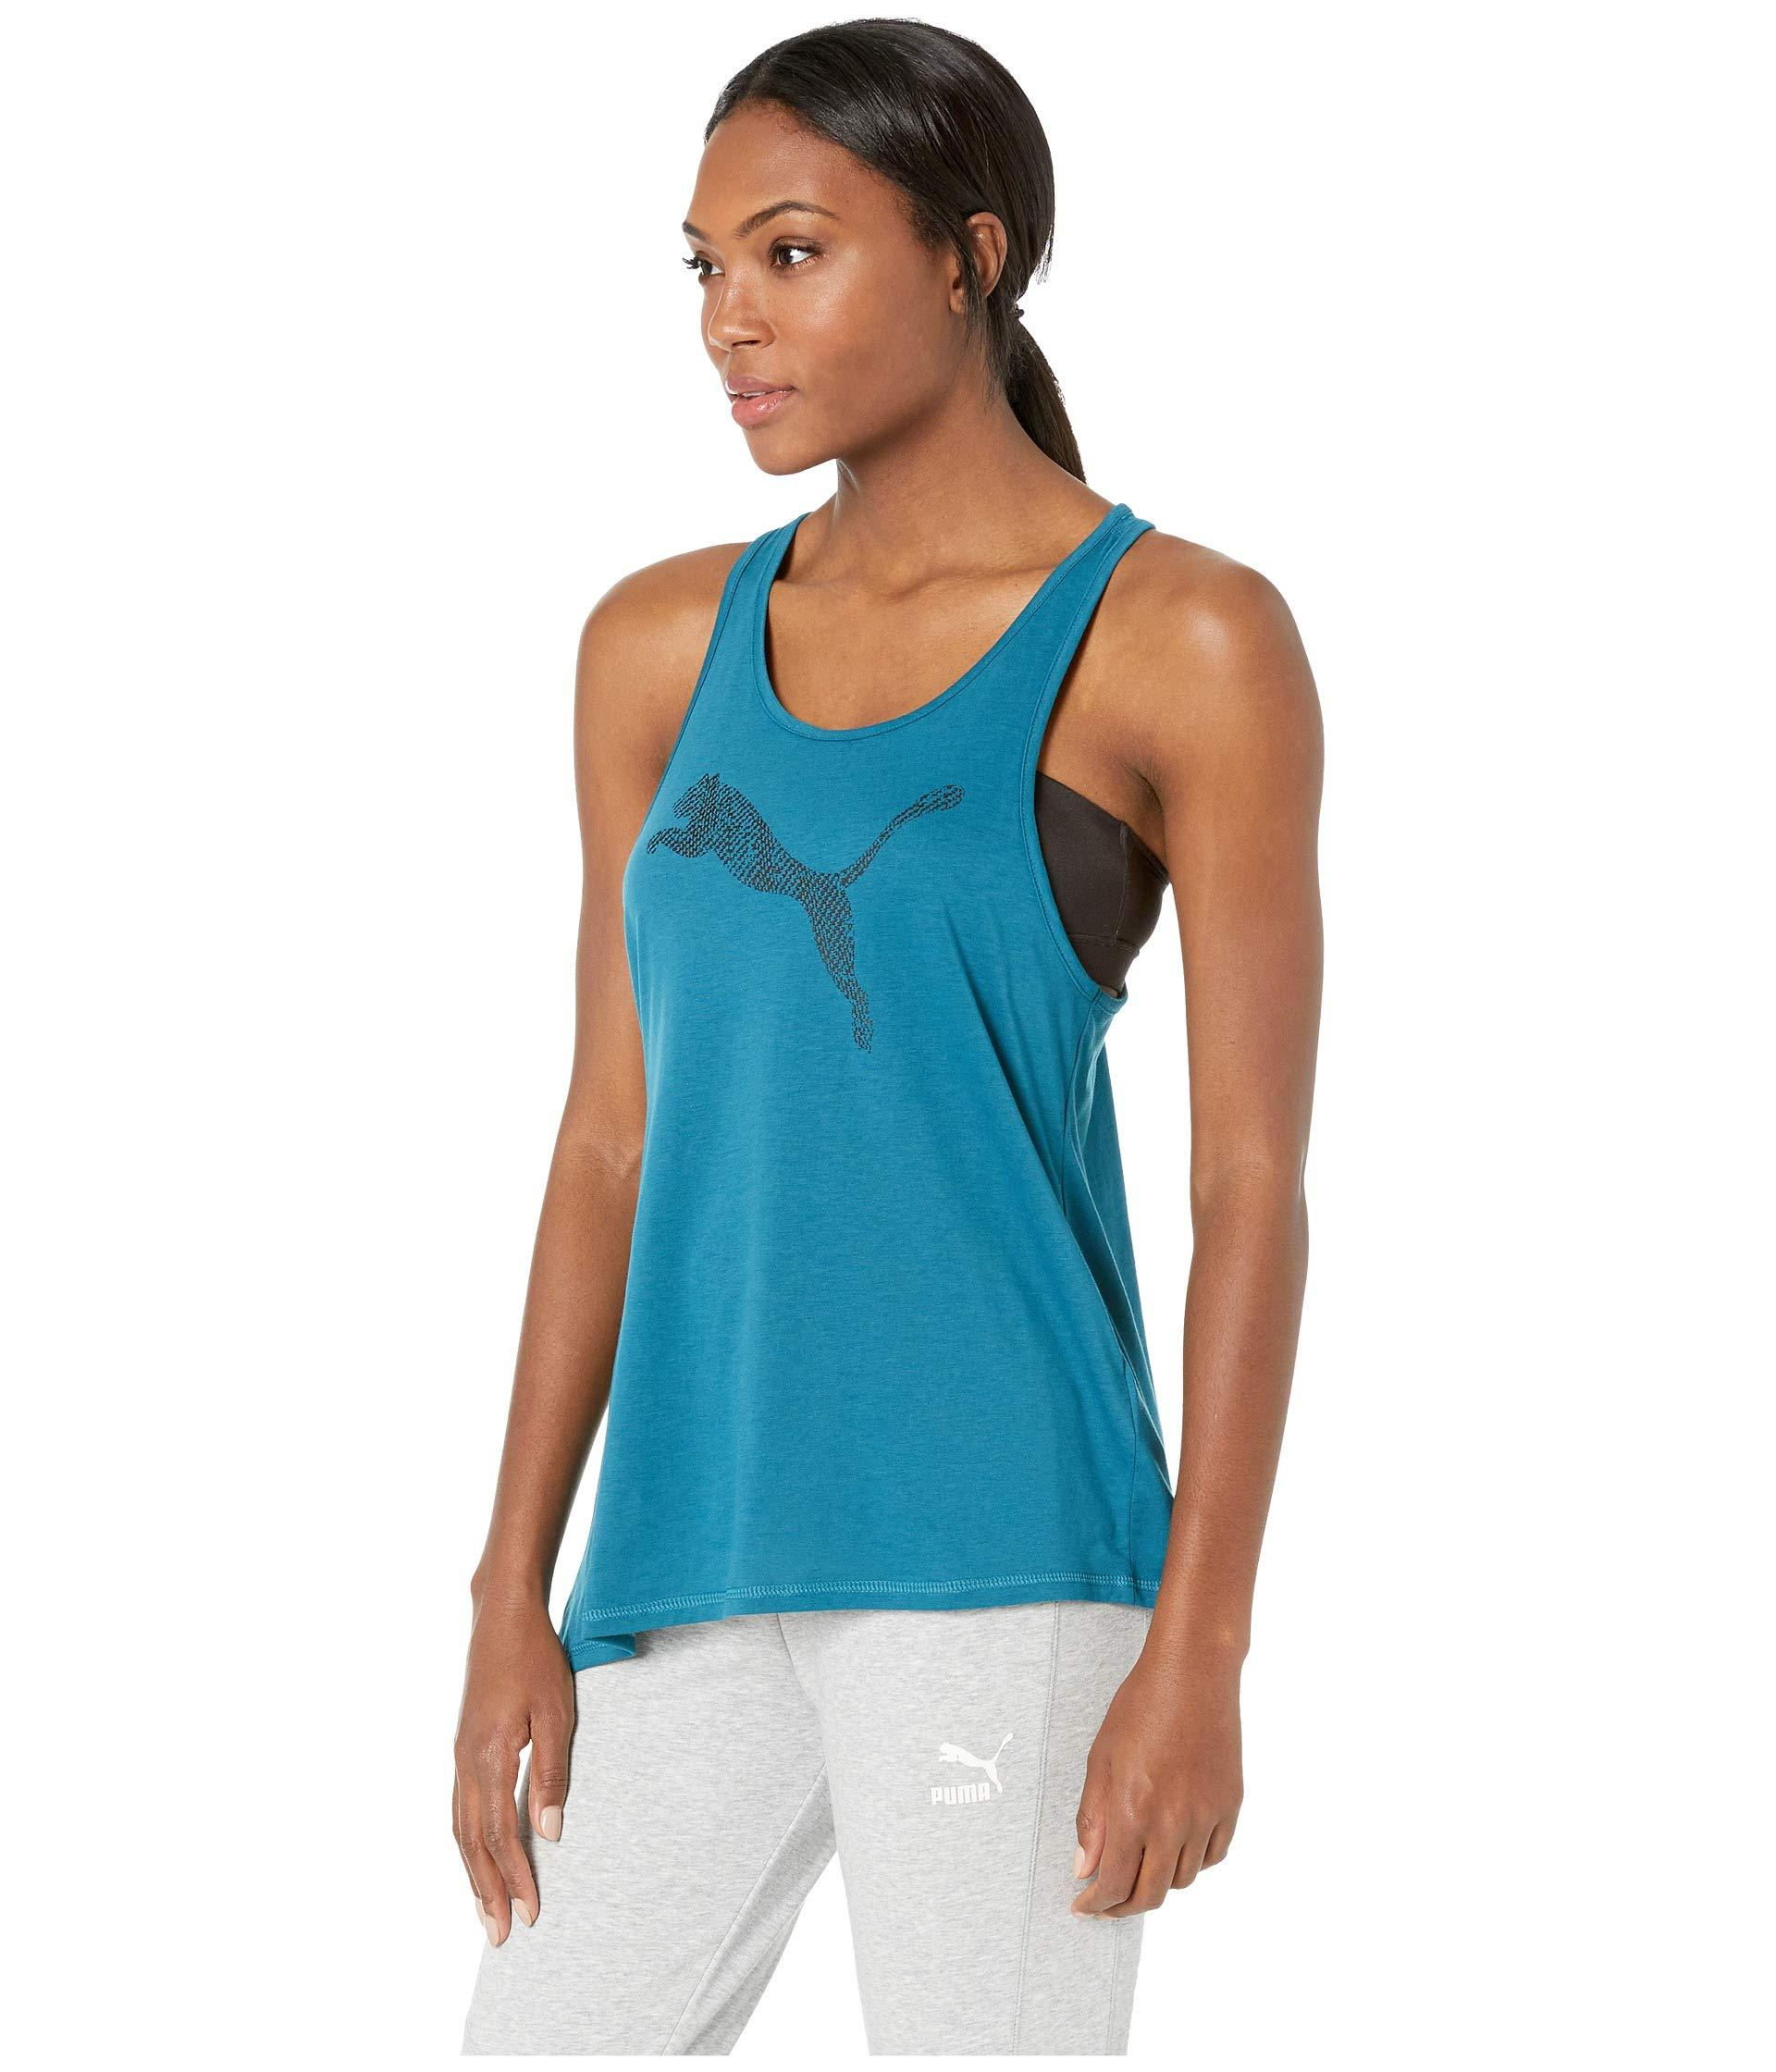 5de64241d08 Lyst - PUMA Holiday Tie Tank Top in Blue - Save 23%